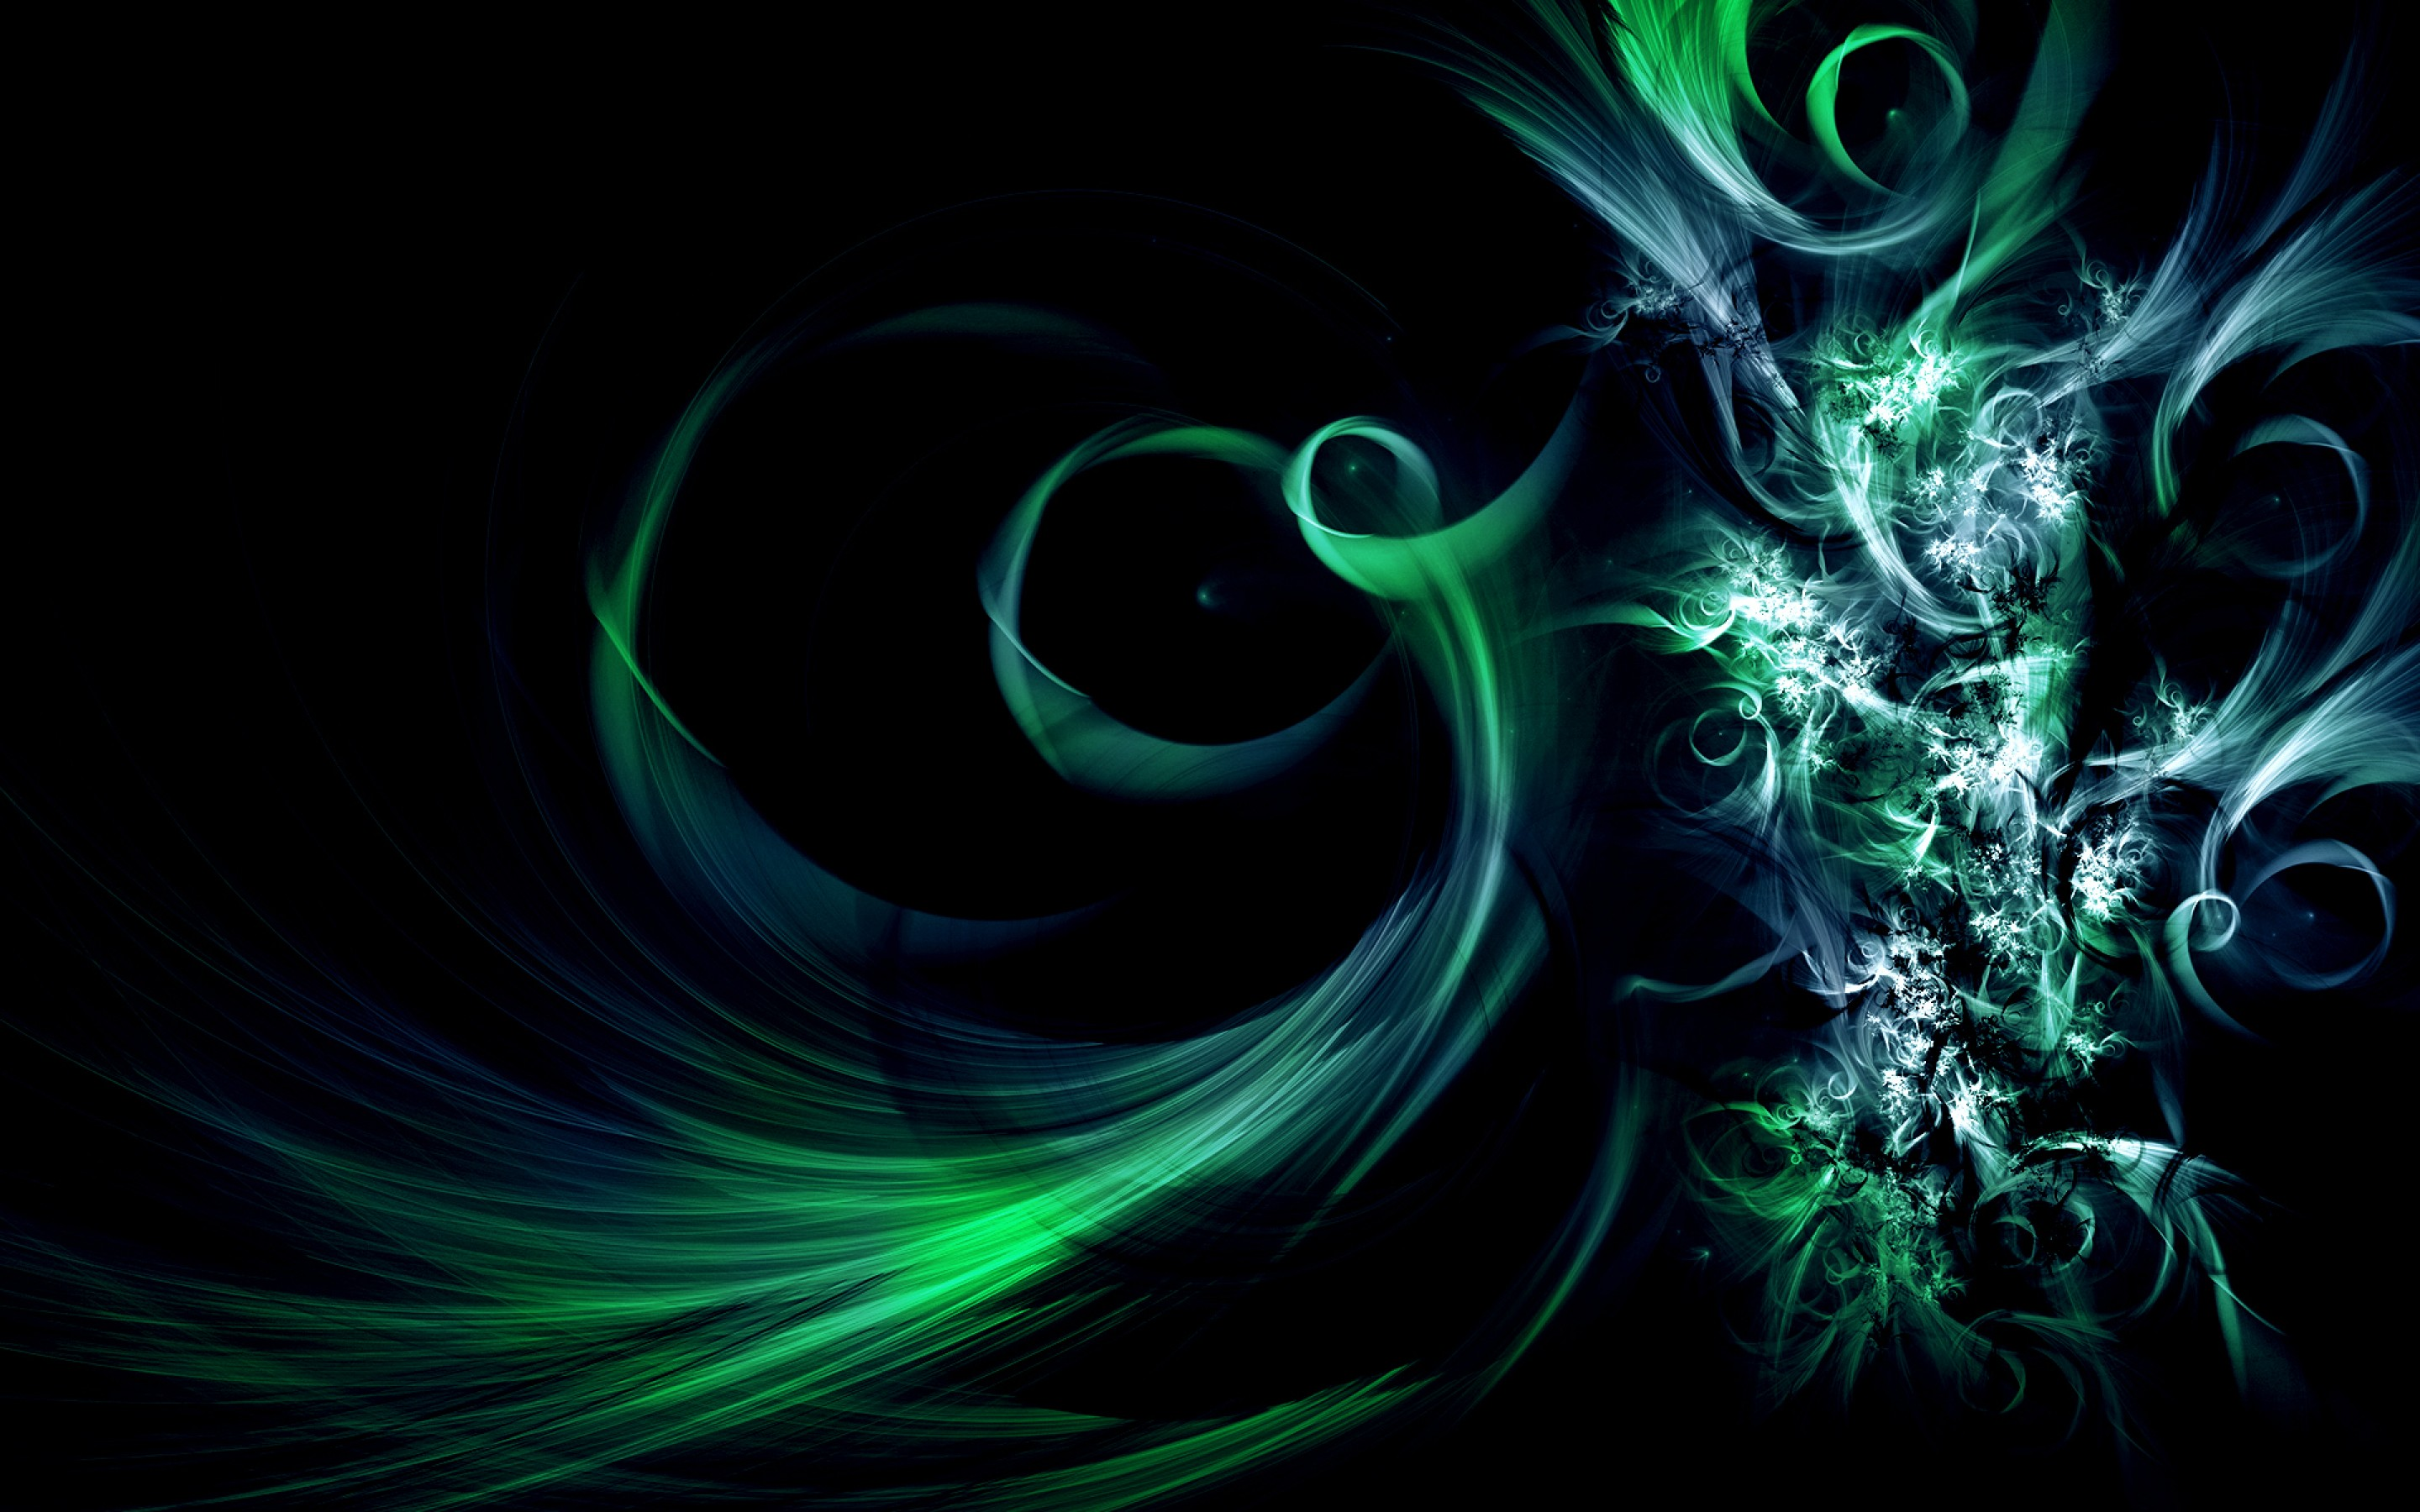 Cool Backgrounds And Wallpapers Group 90